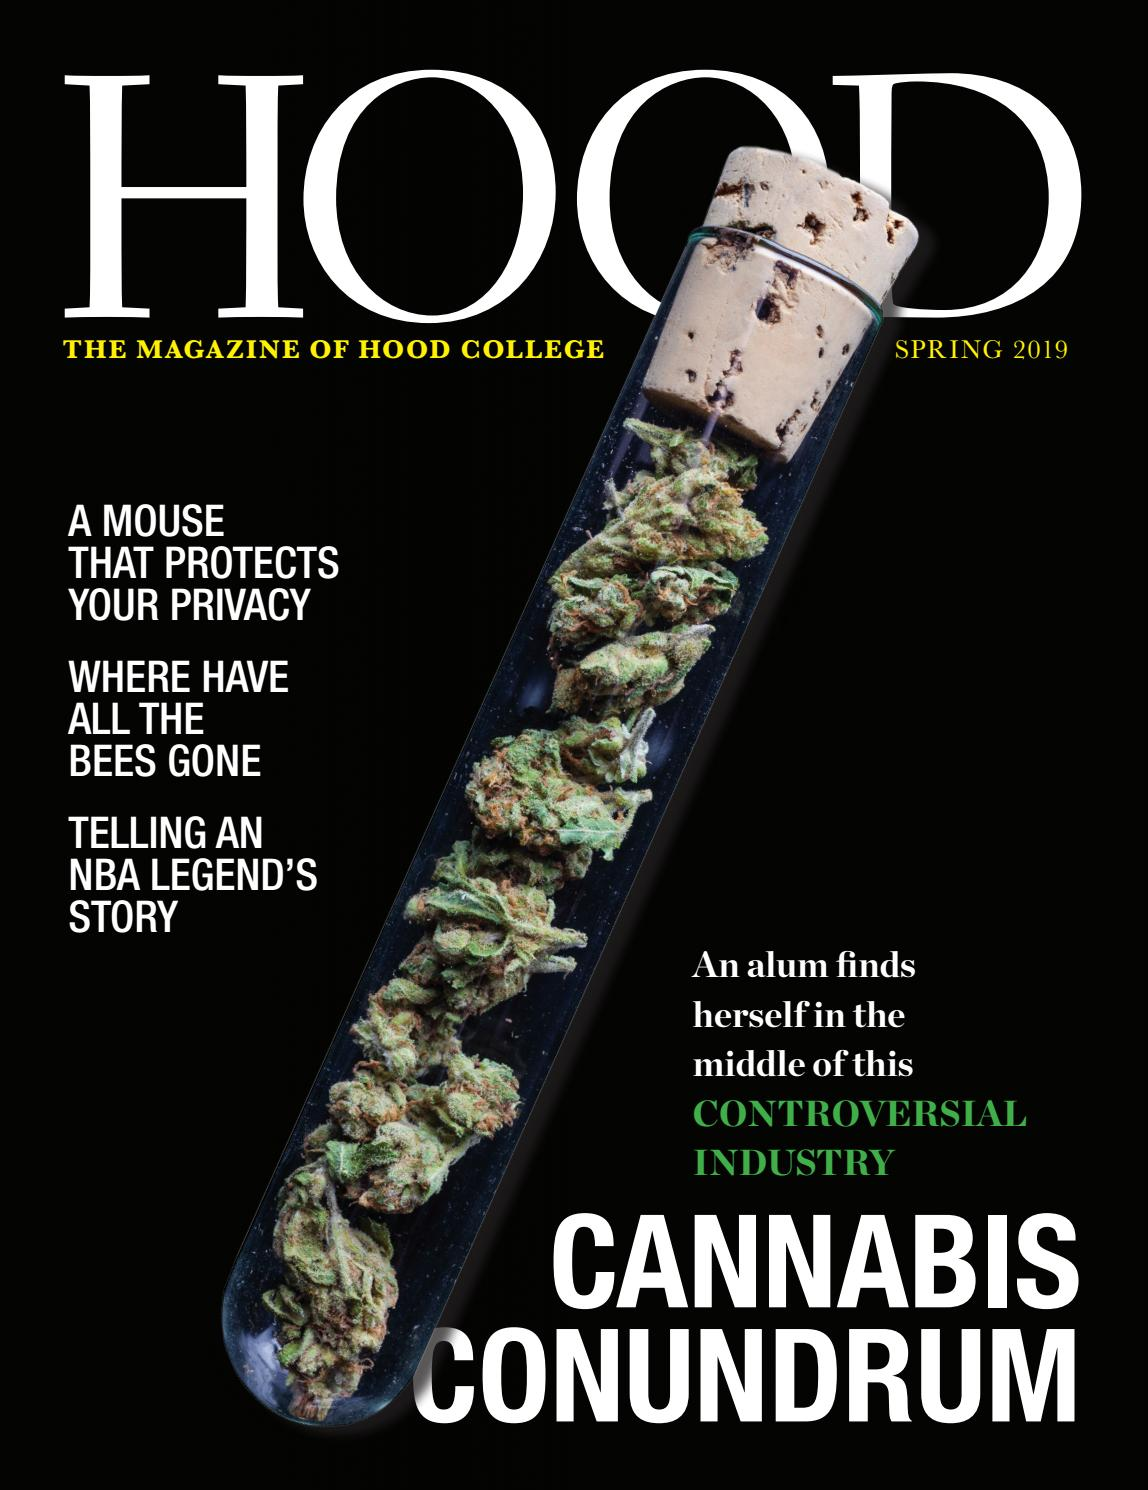 Hood Magazine | Spring 2019 by Hood College - issuu